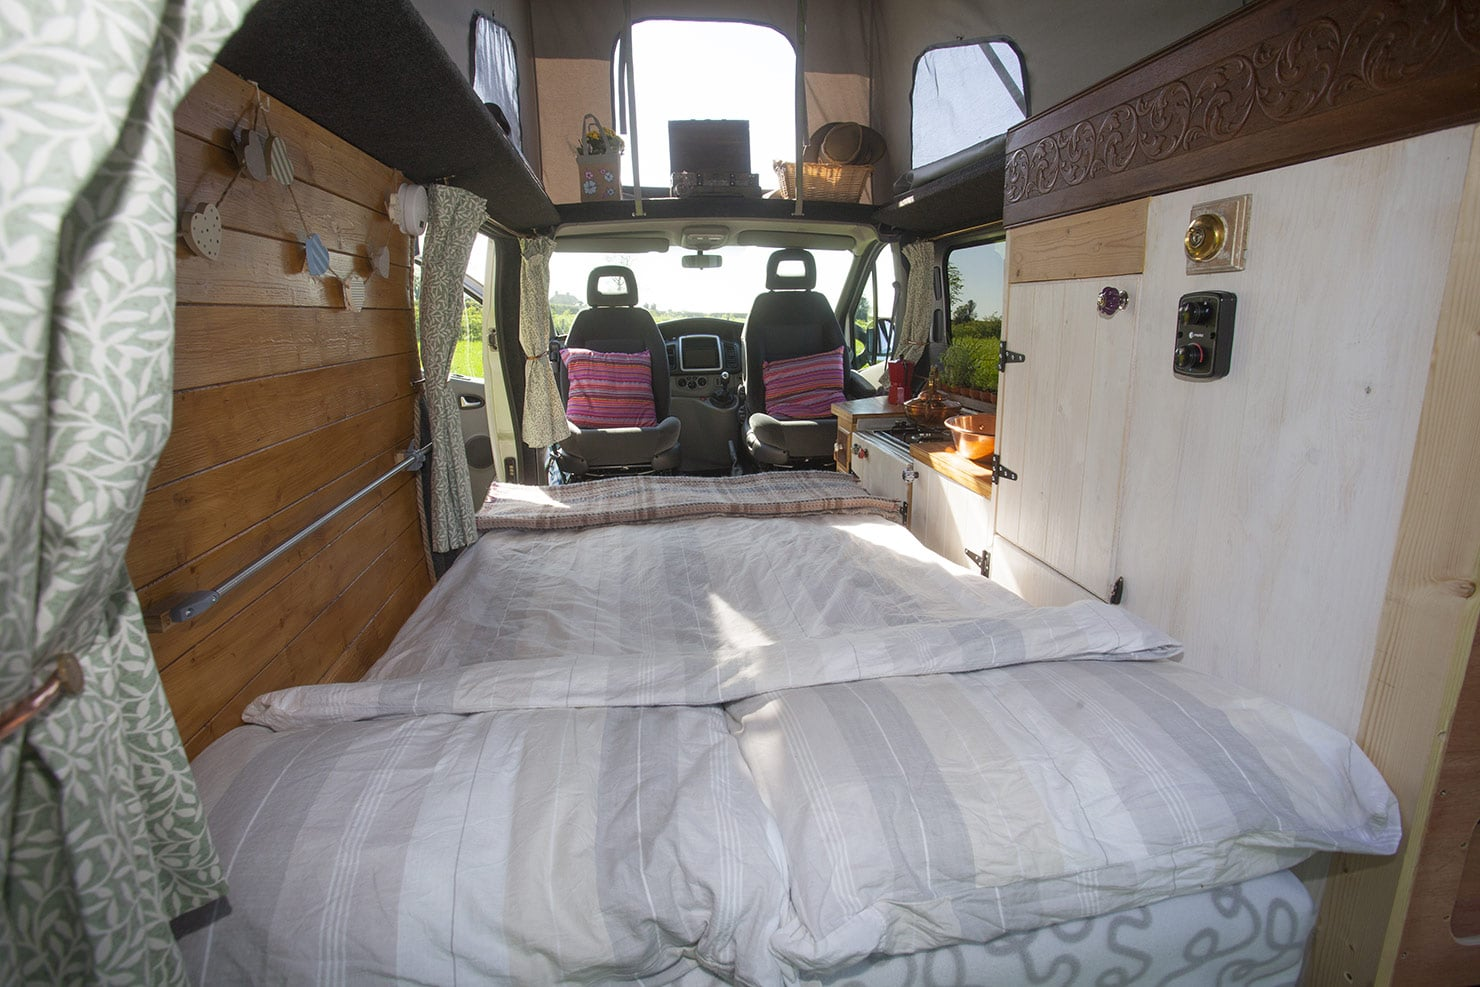 The Seat converted into a 6 foot bed, Ideal for a couple. (Showing optional bedding).